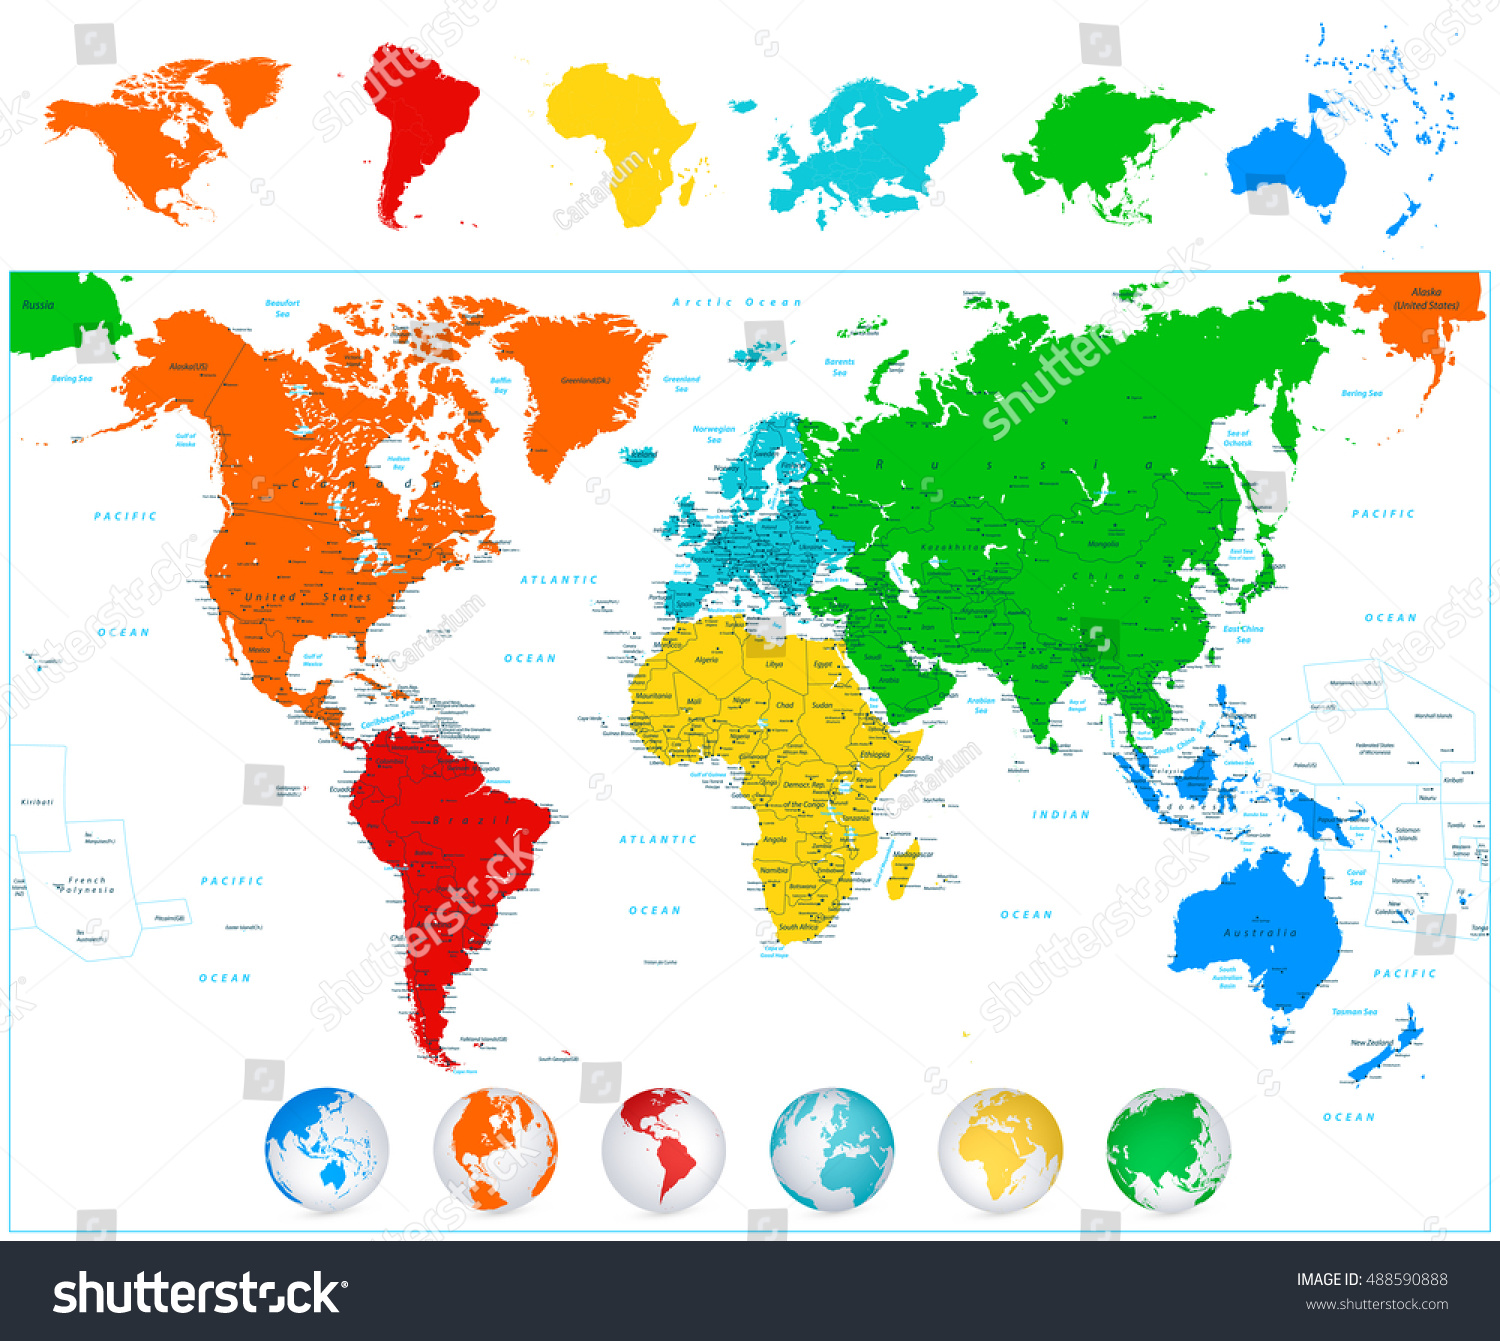 Detailed vector world map colorful continents stock vector 488590888 detailed vector world map with colorful continents political boundaries country names and 3d globes gumiabroncs Images